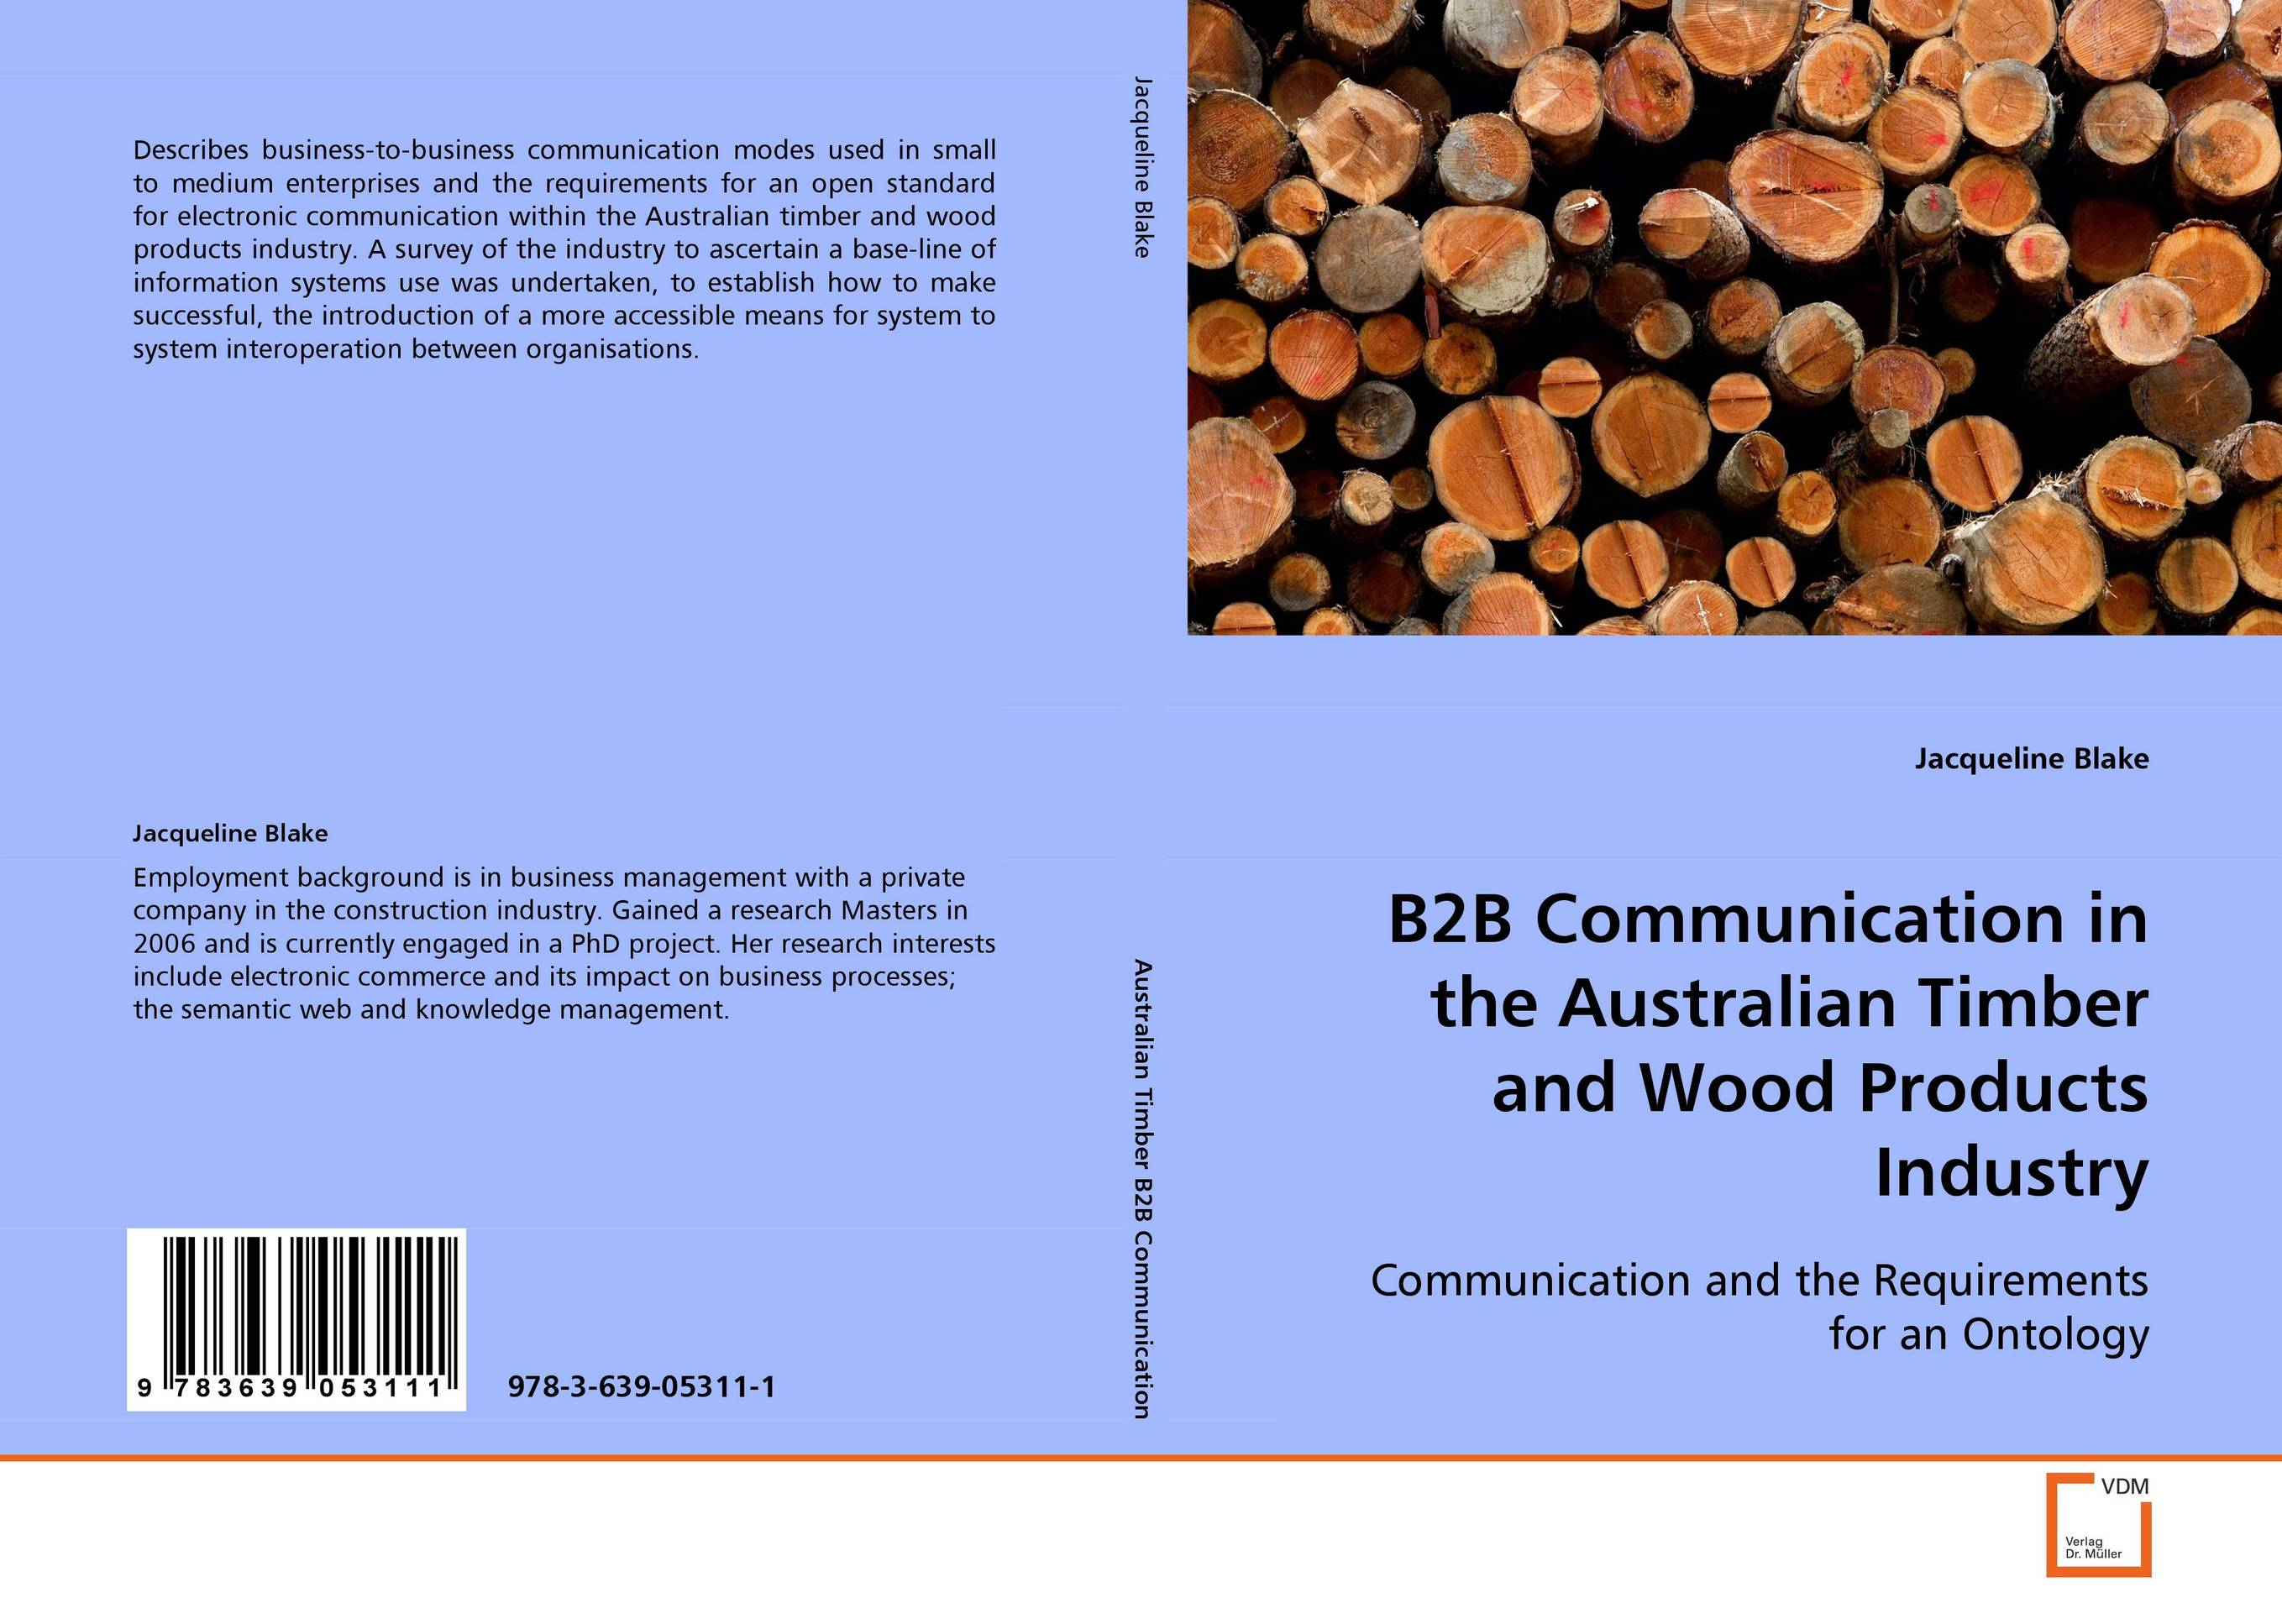 B2B Communication in the Australian Timber and Wood Products Industry n renton e family trusts a plain english guide for australian families of average means